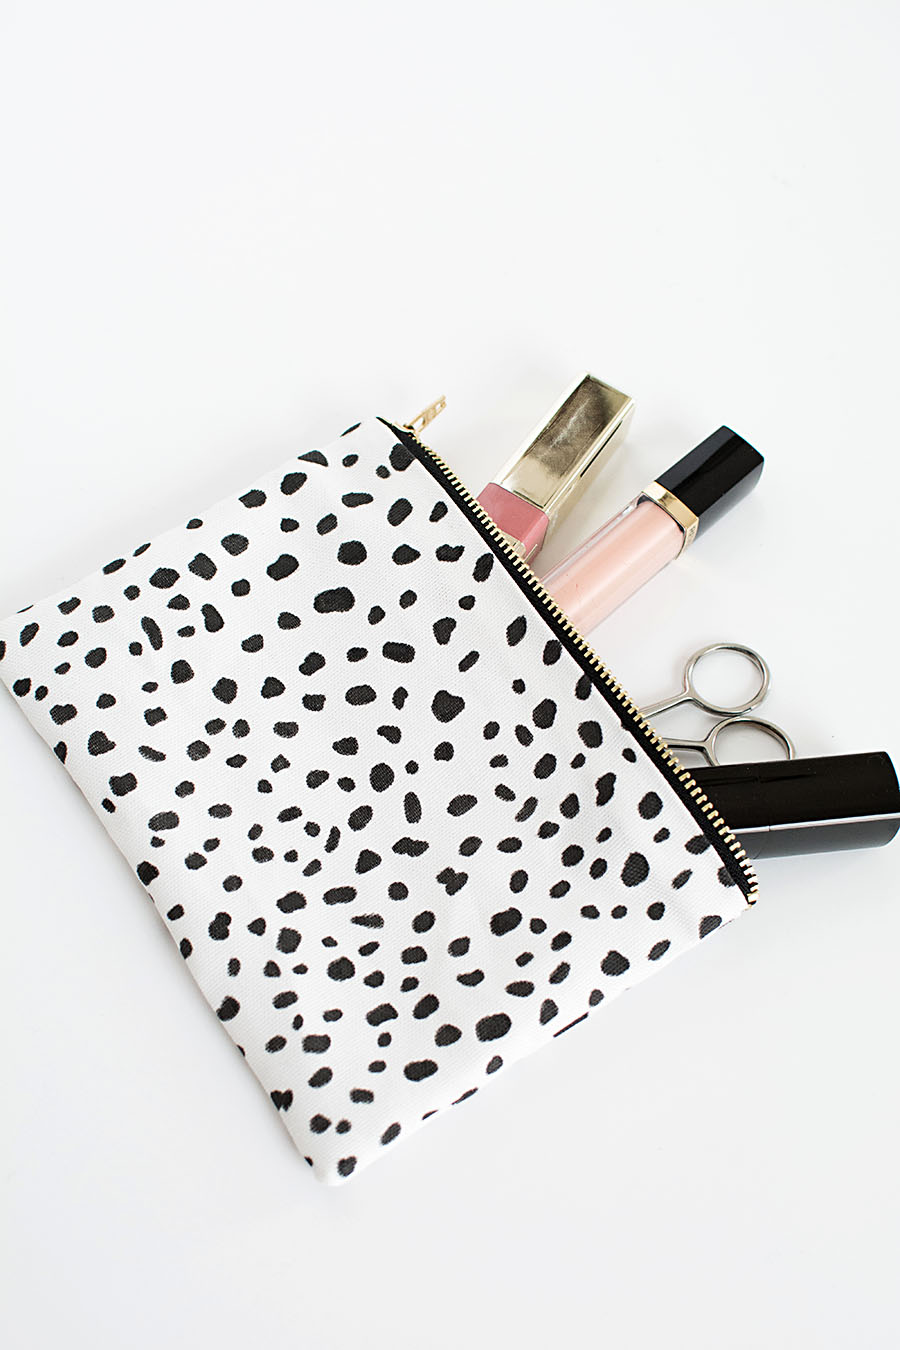 DIY no sew zipper pouch